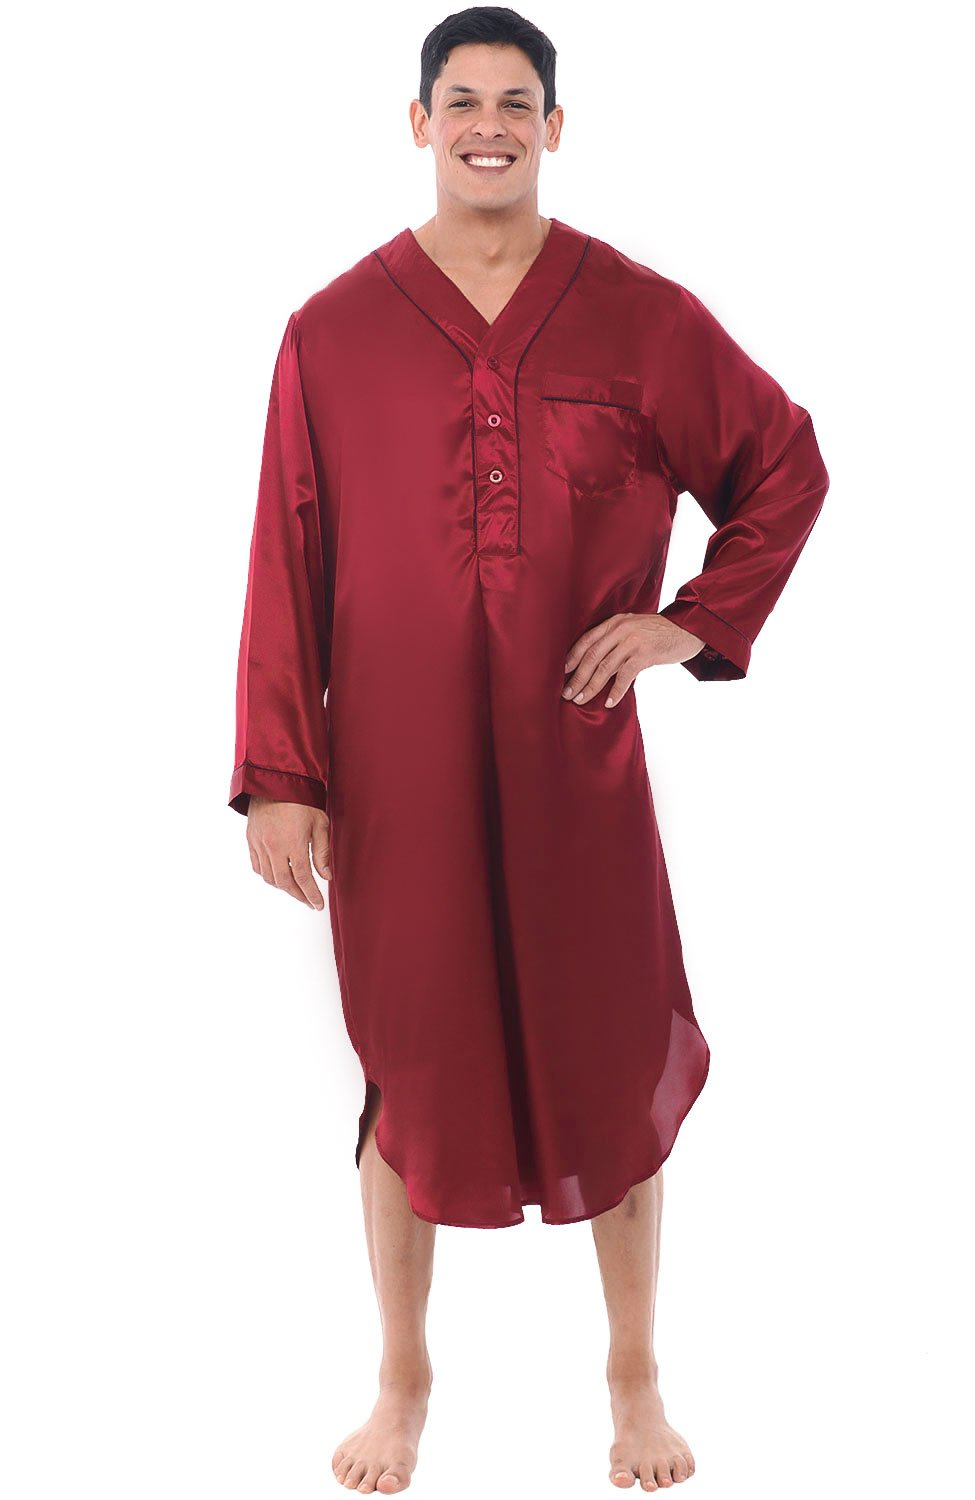 Alexander Del Rossa Mens Satin Nightshirt, Long Lightweight Woven Kaftan A0763